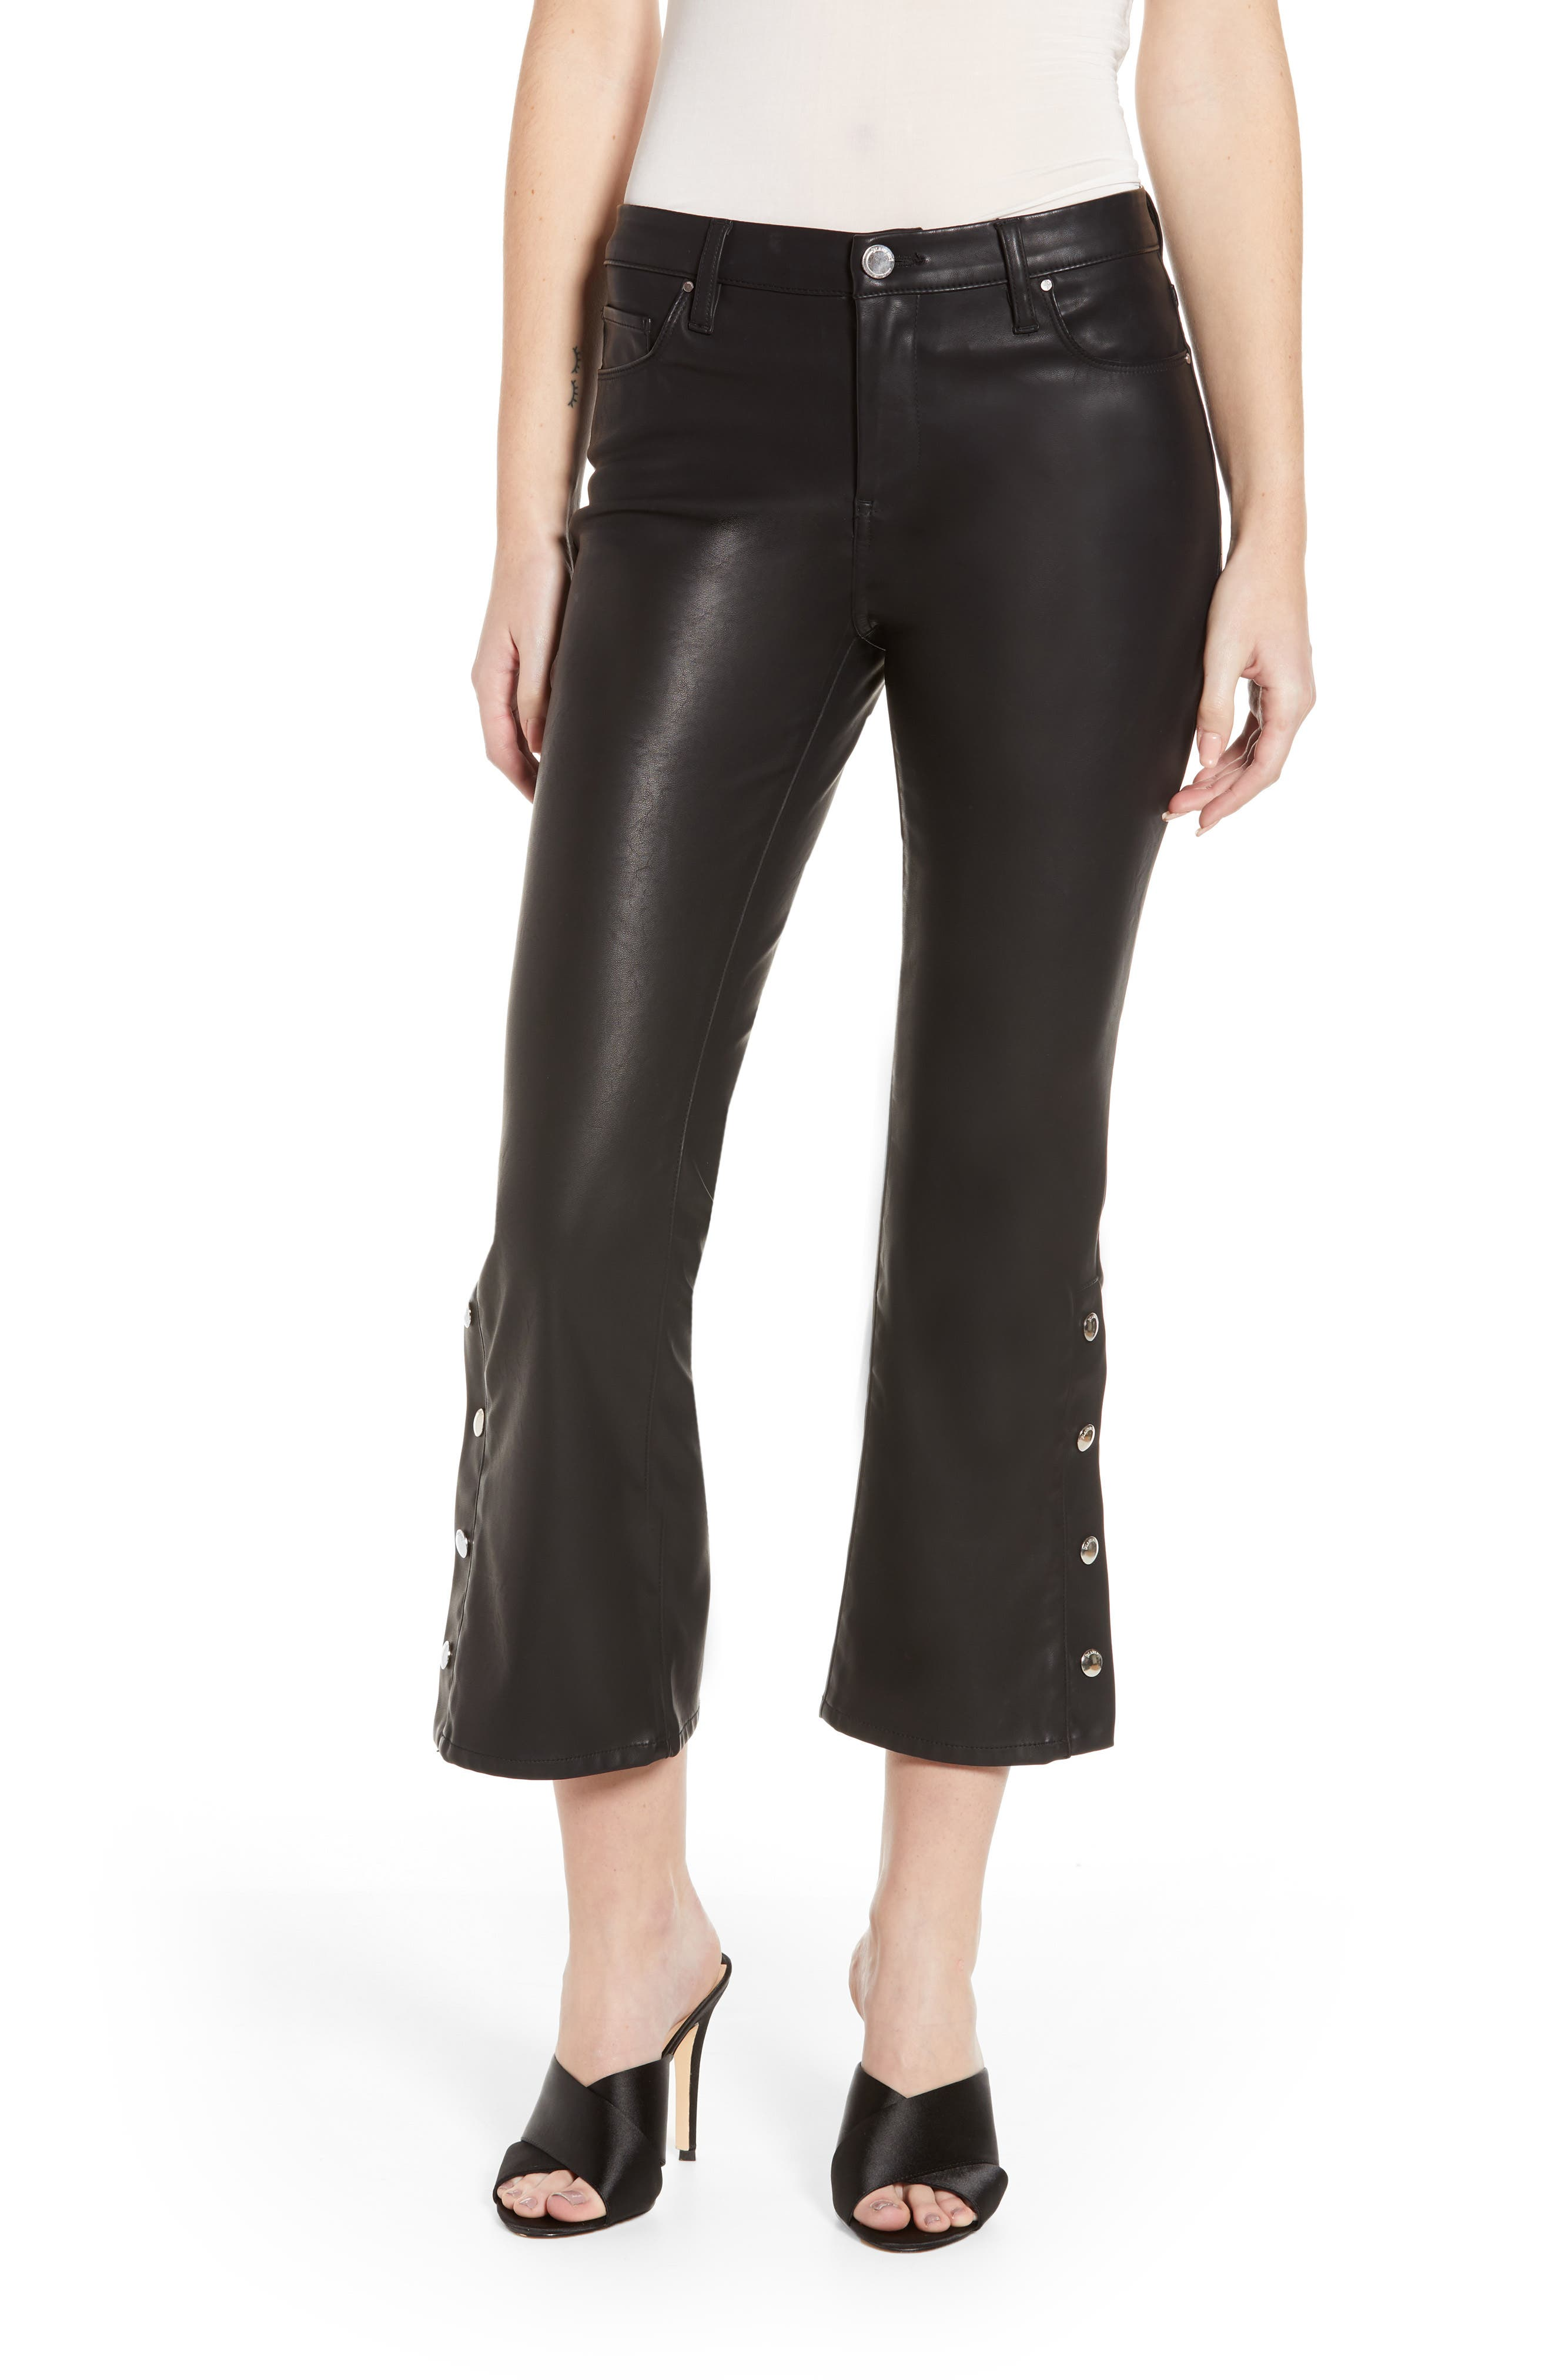 Blanknyc Vegan Leather Snap Kick Flare Pants, Black